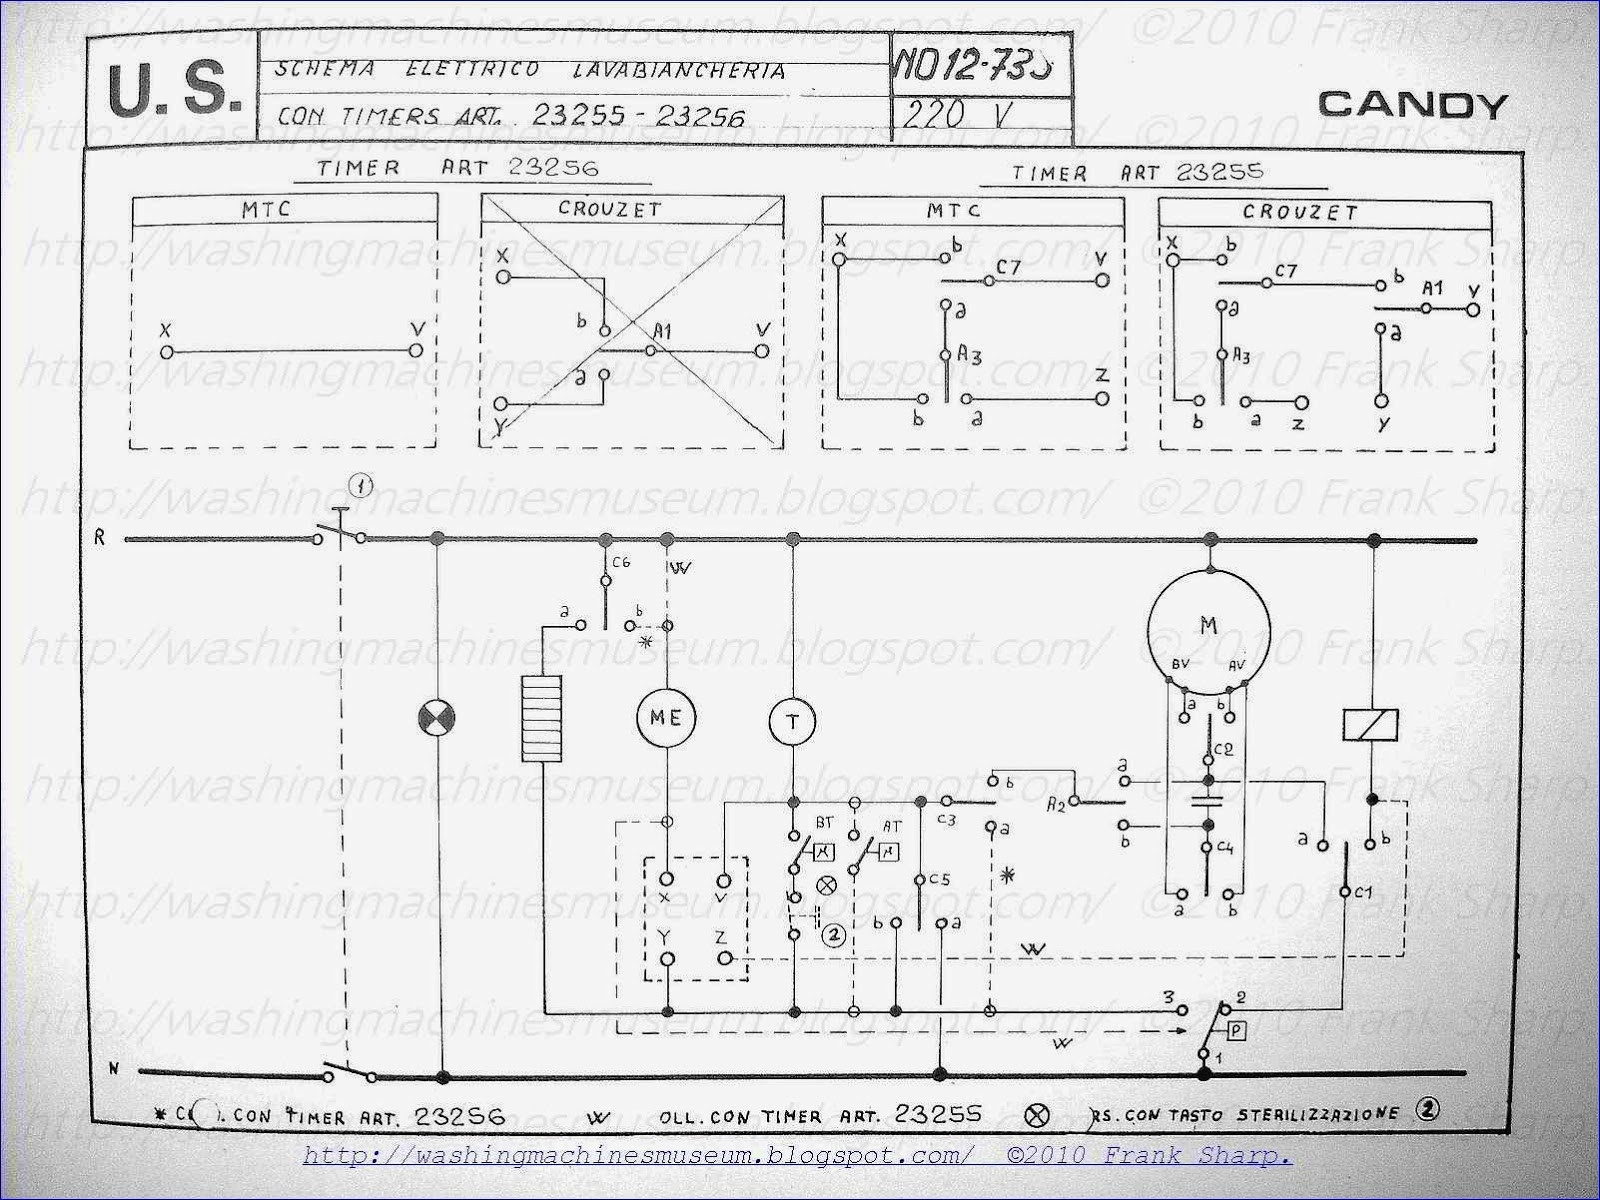 washing machine wiring diagram and schematics | free ... wiring diagram wbse3120b2ww ge washing machine wiring diagram for ge washing machine #1